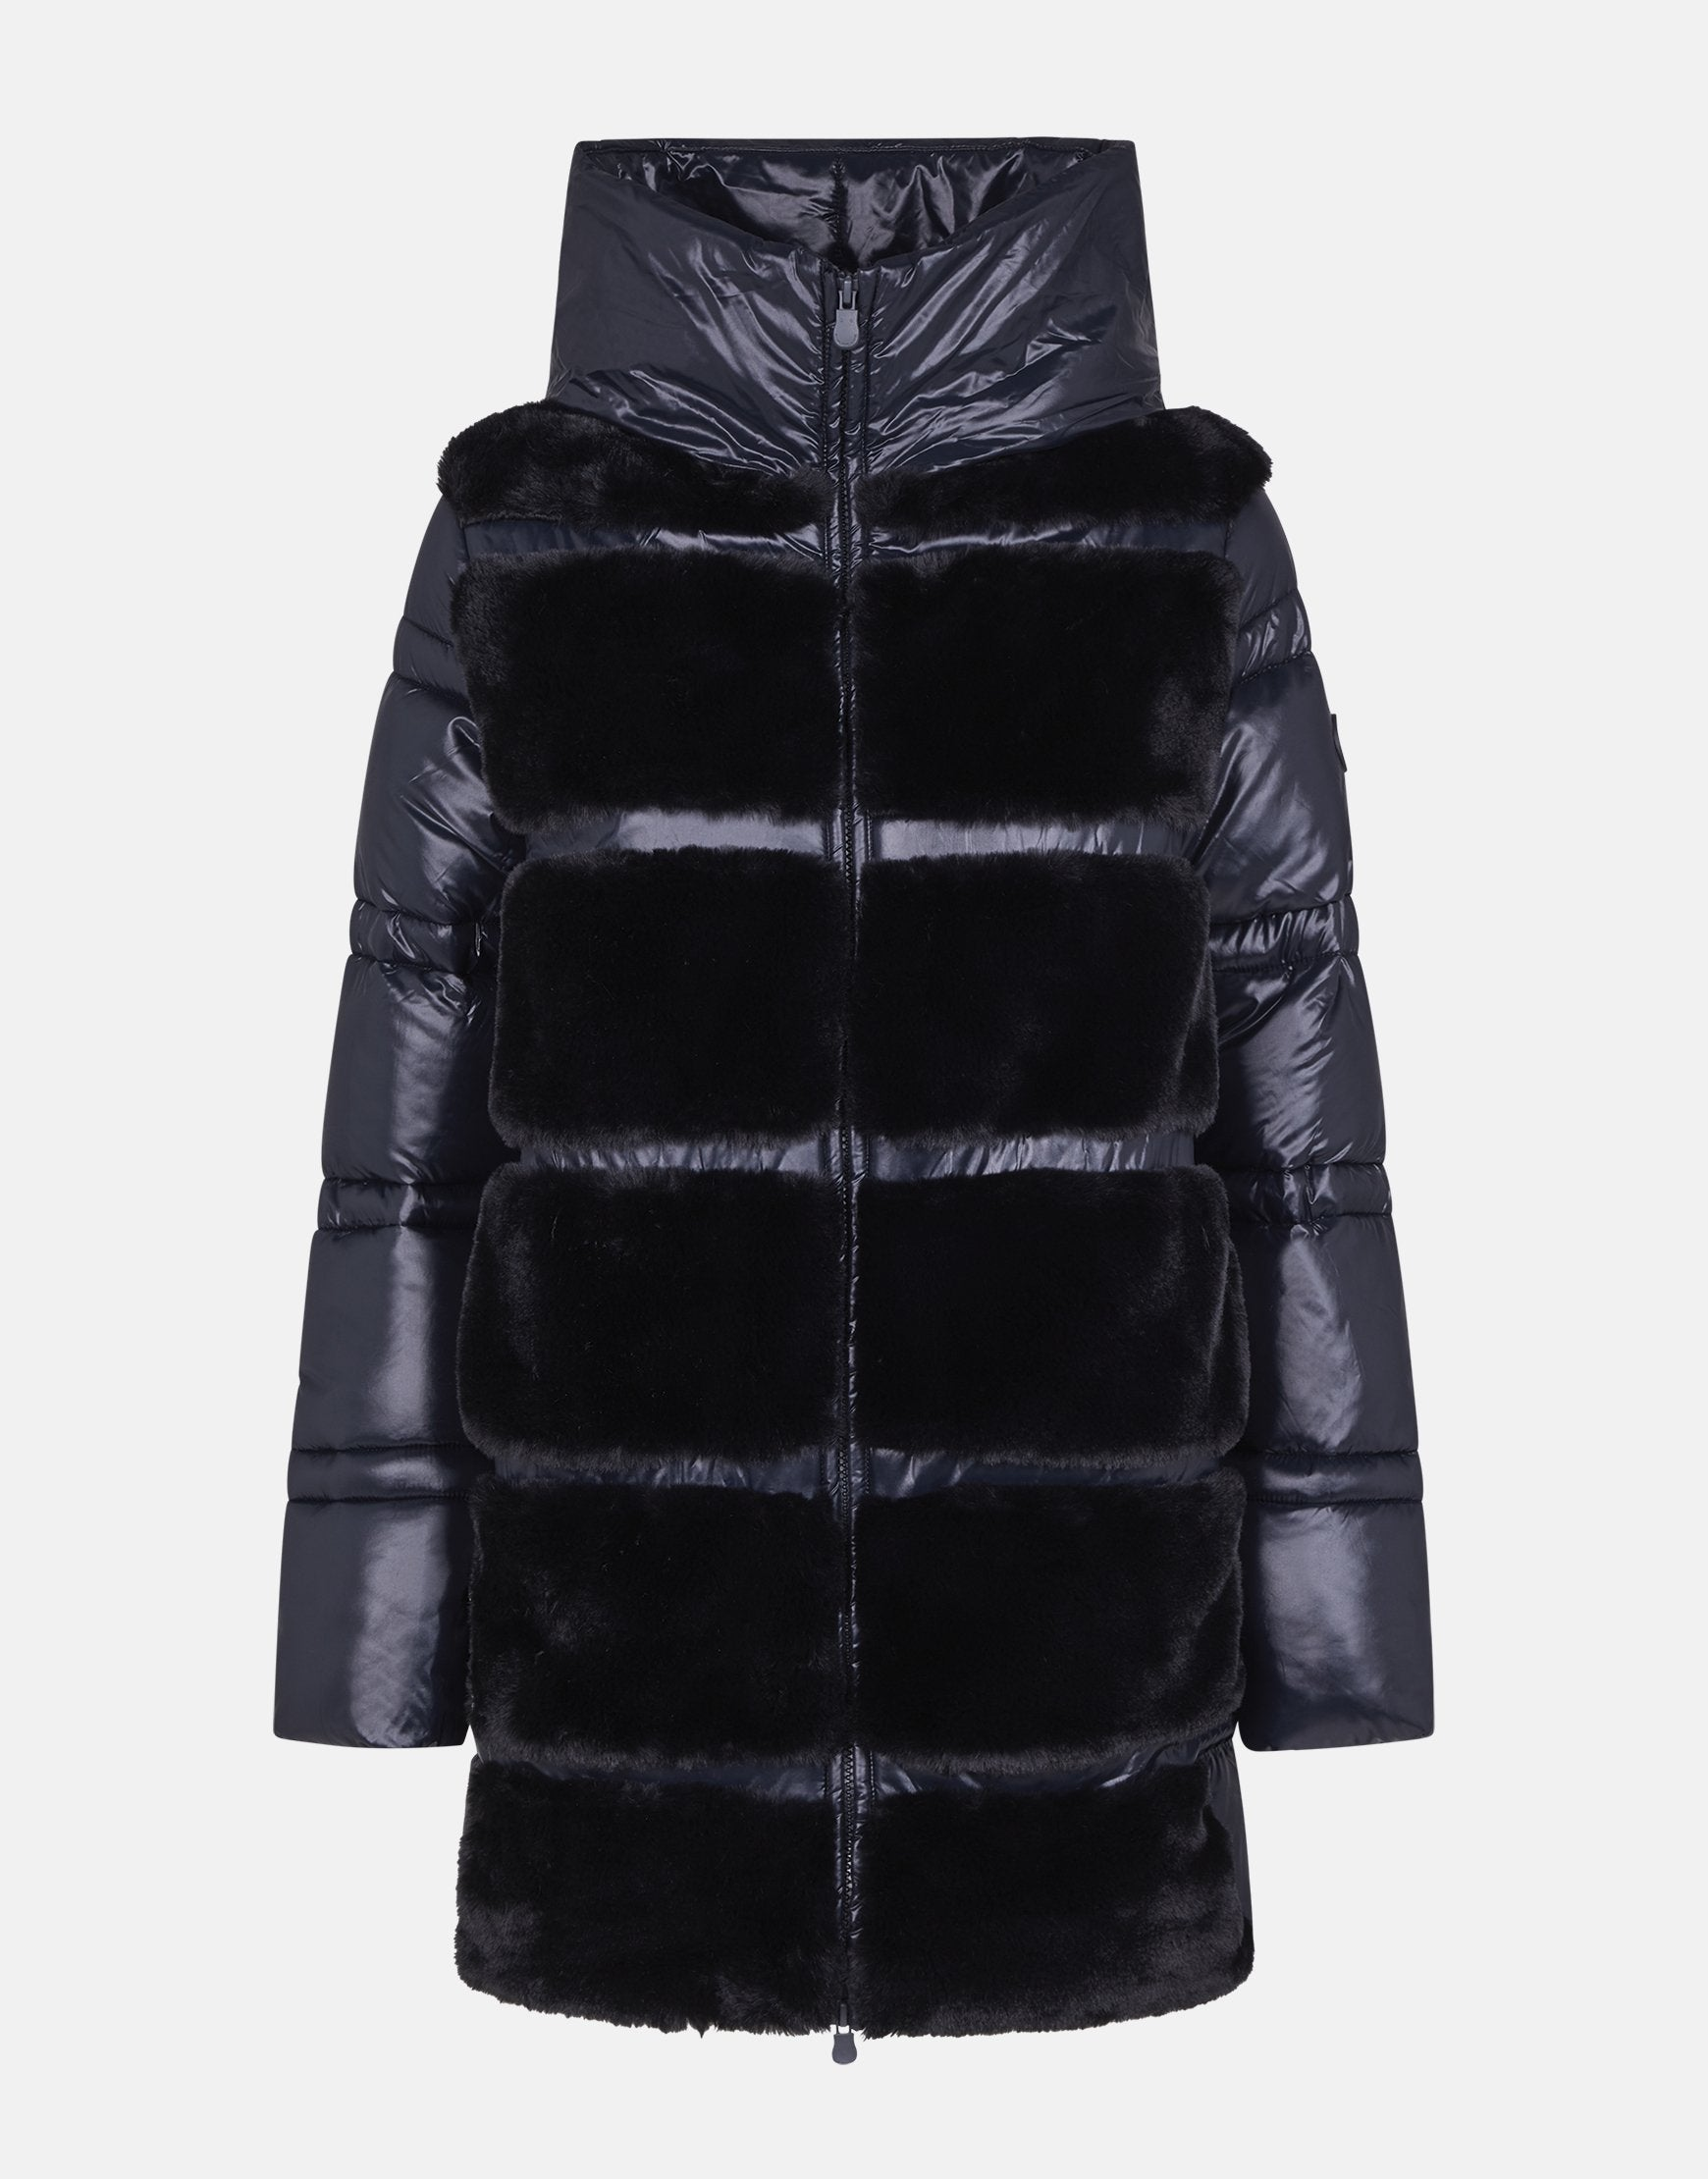 Womens Hooded Coat in FURY with Faux Fur